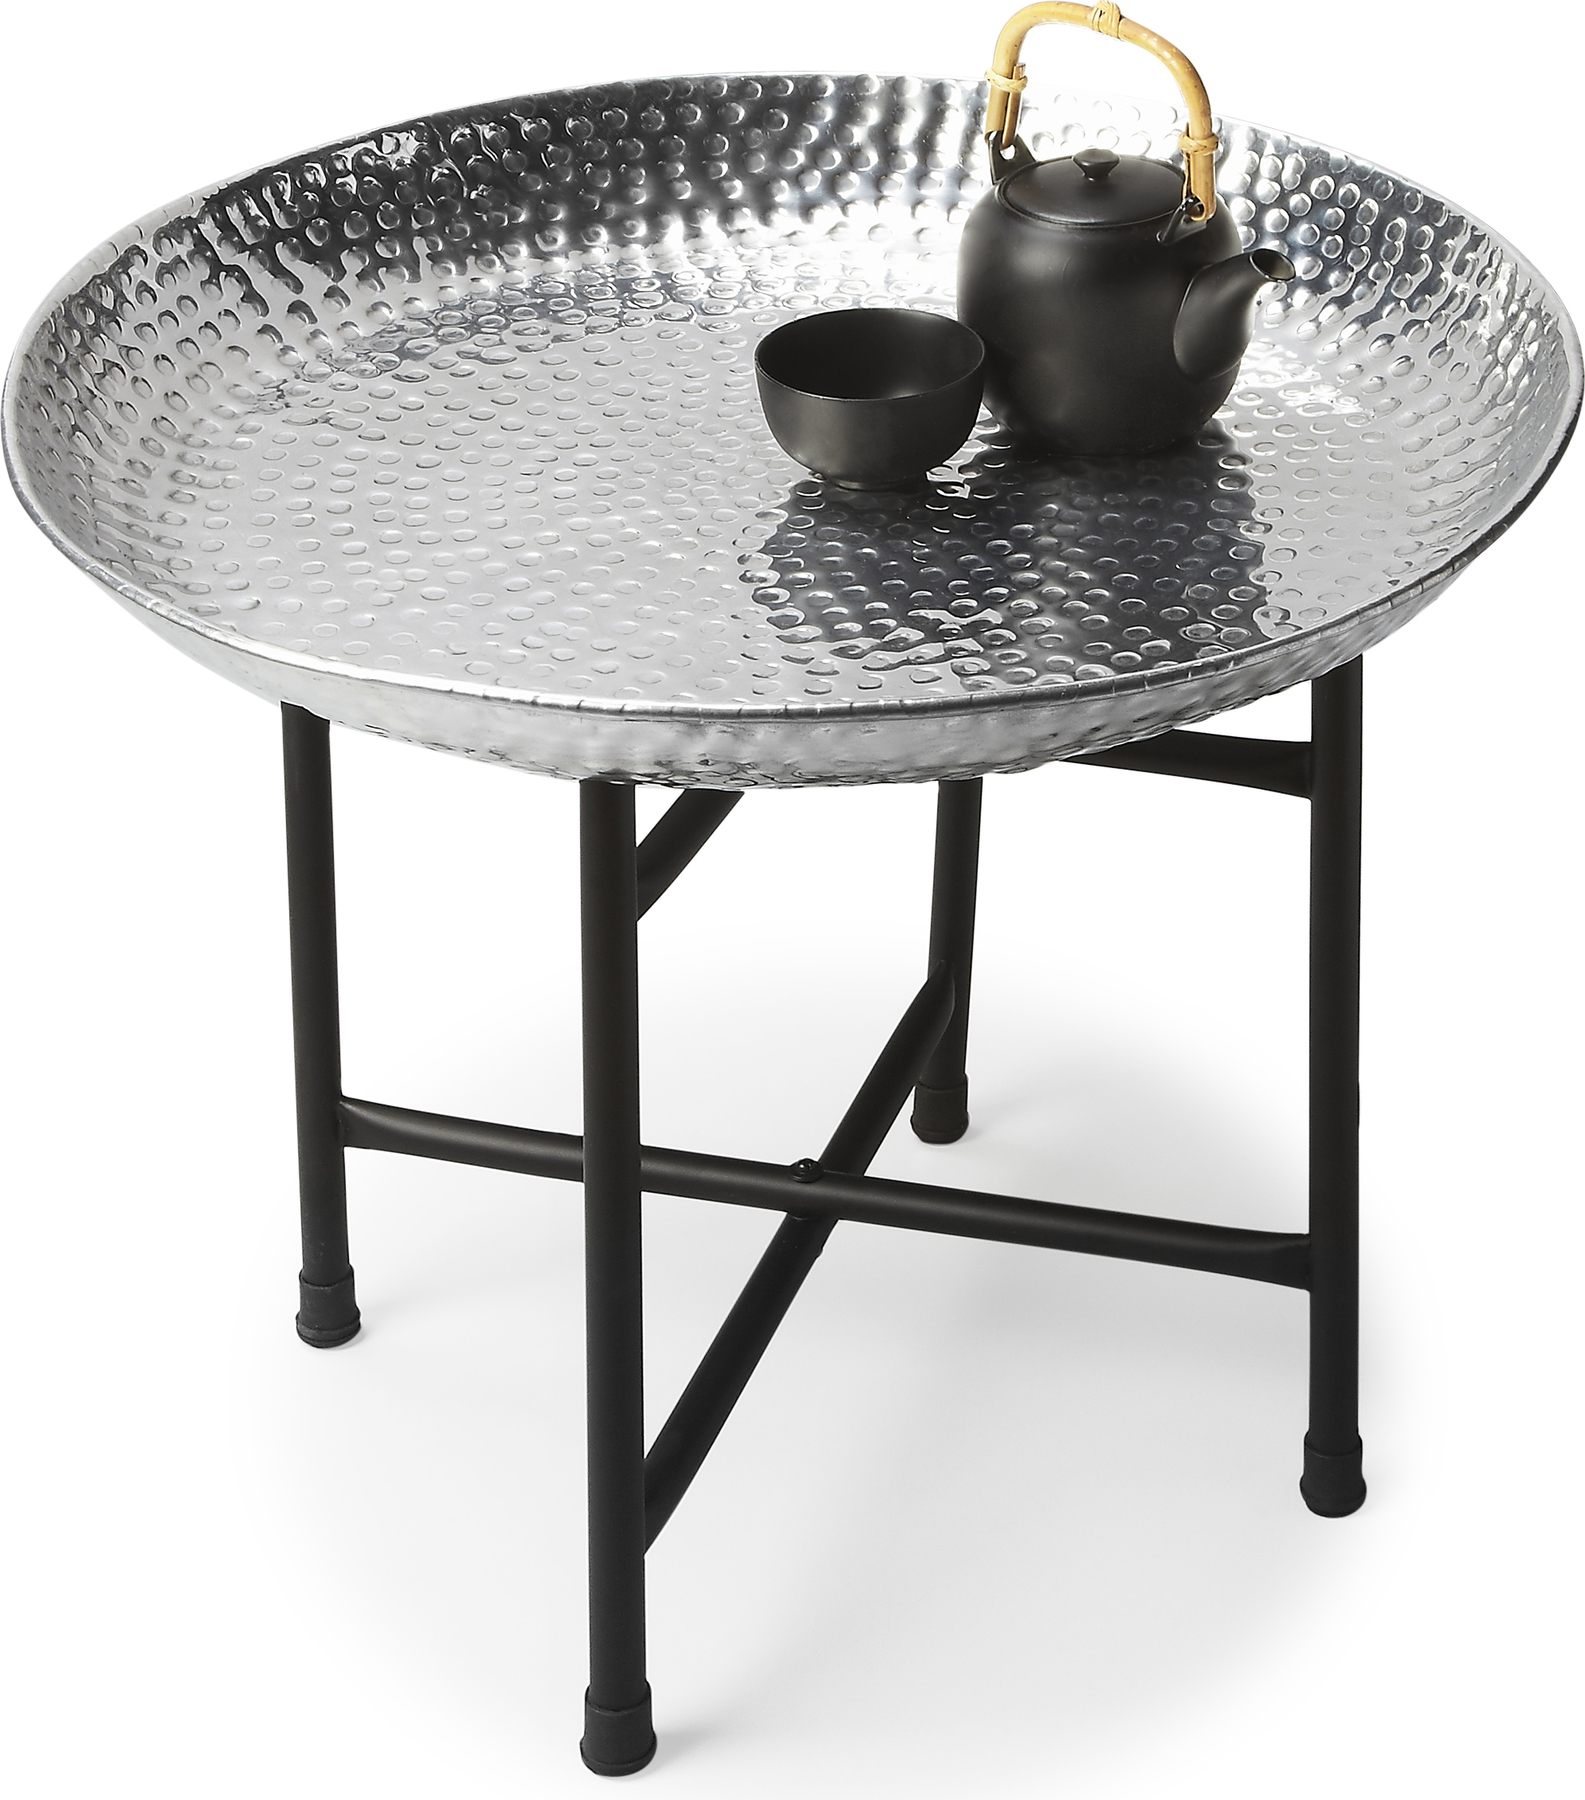 Casbah Metal Tray Table | HedgeApple